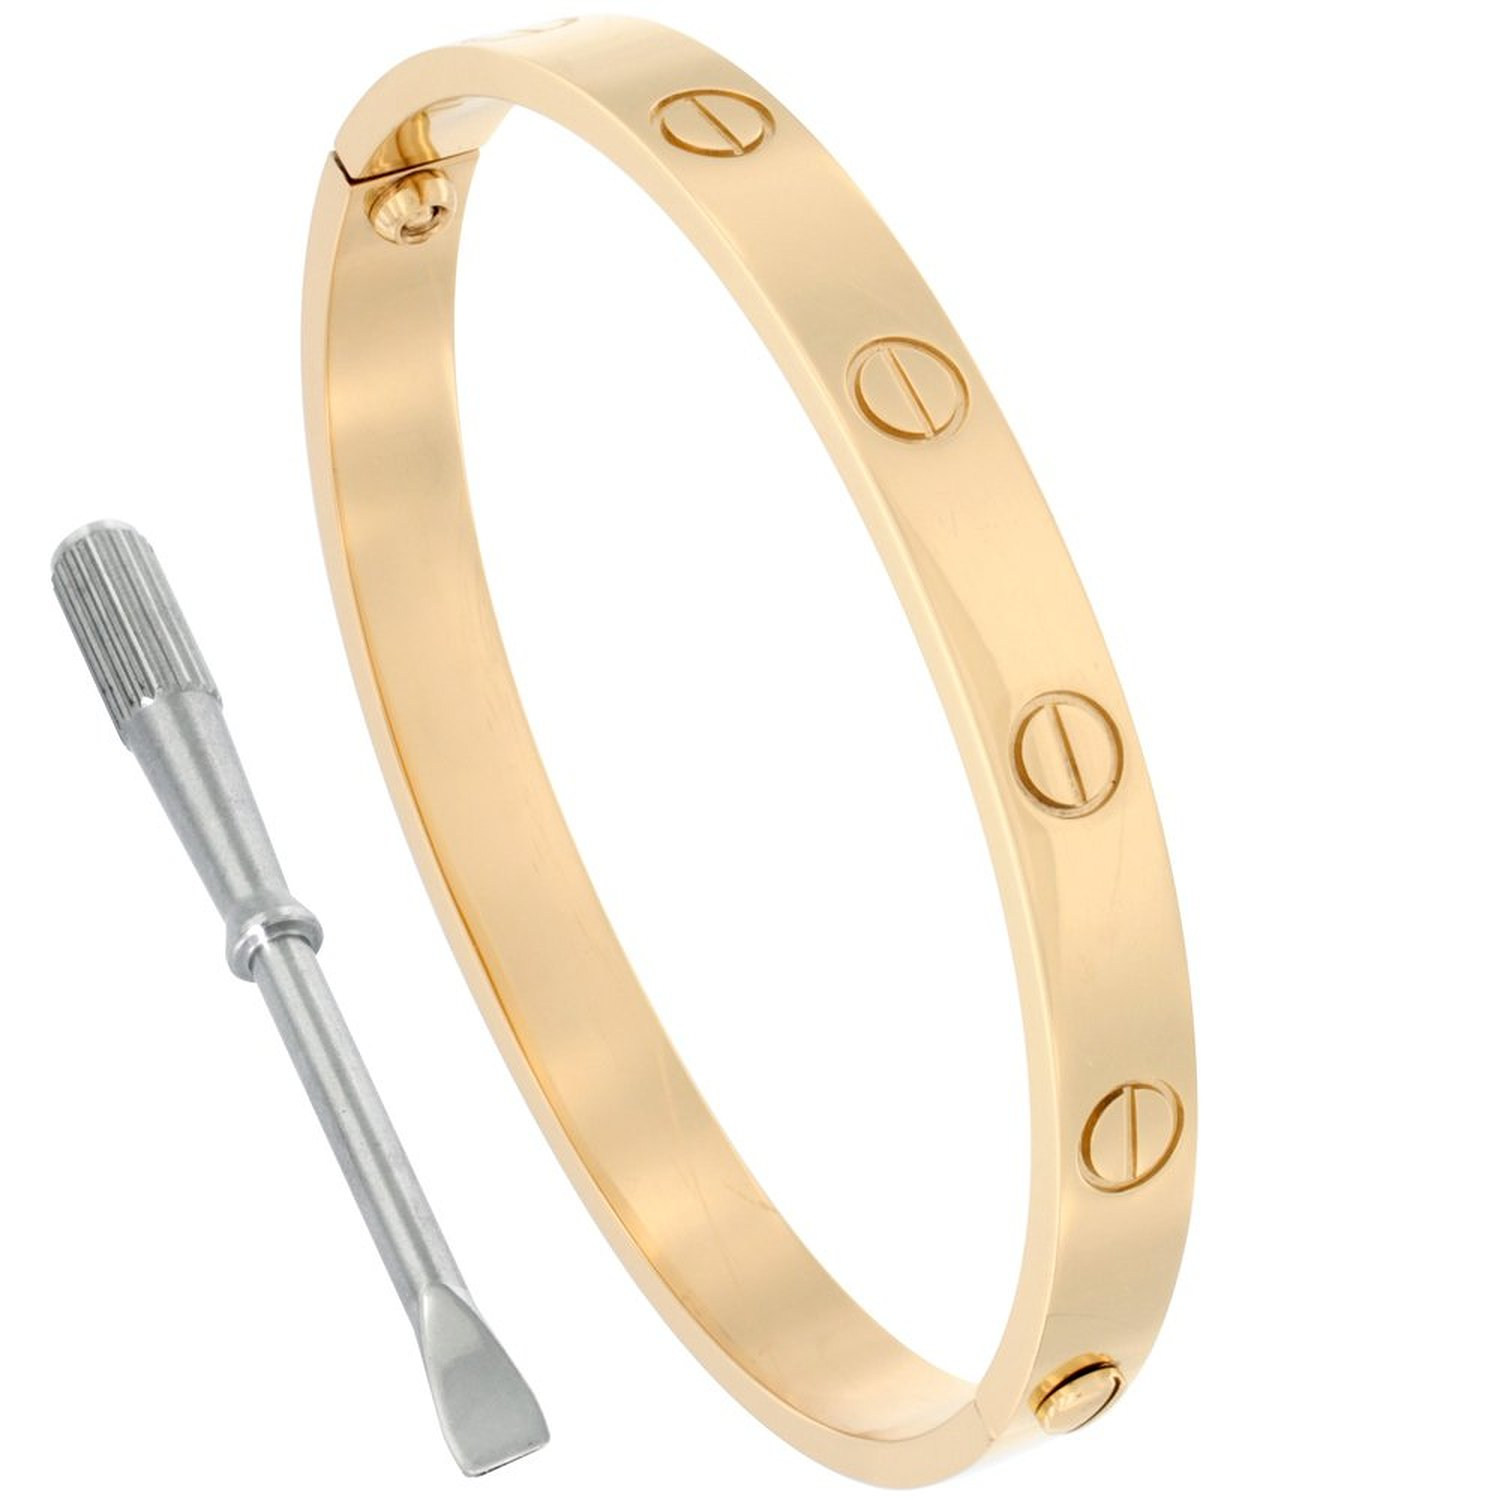 org jewelry diamond l hinged img bangle oval j gold sale bracelets bangles id at bracelet for